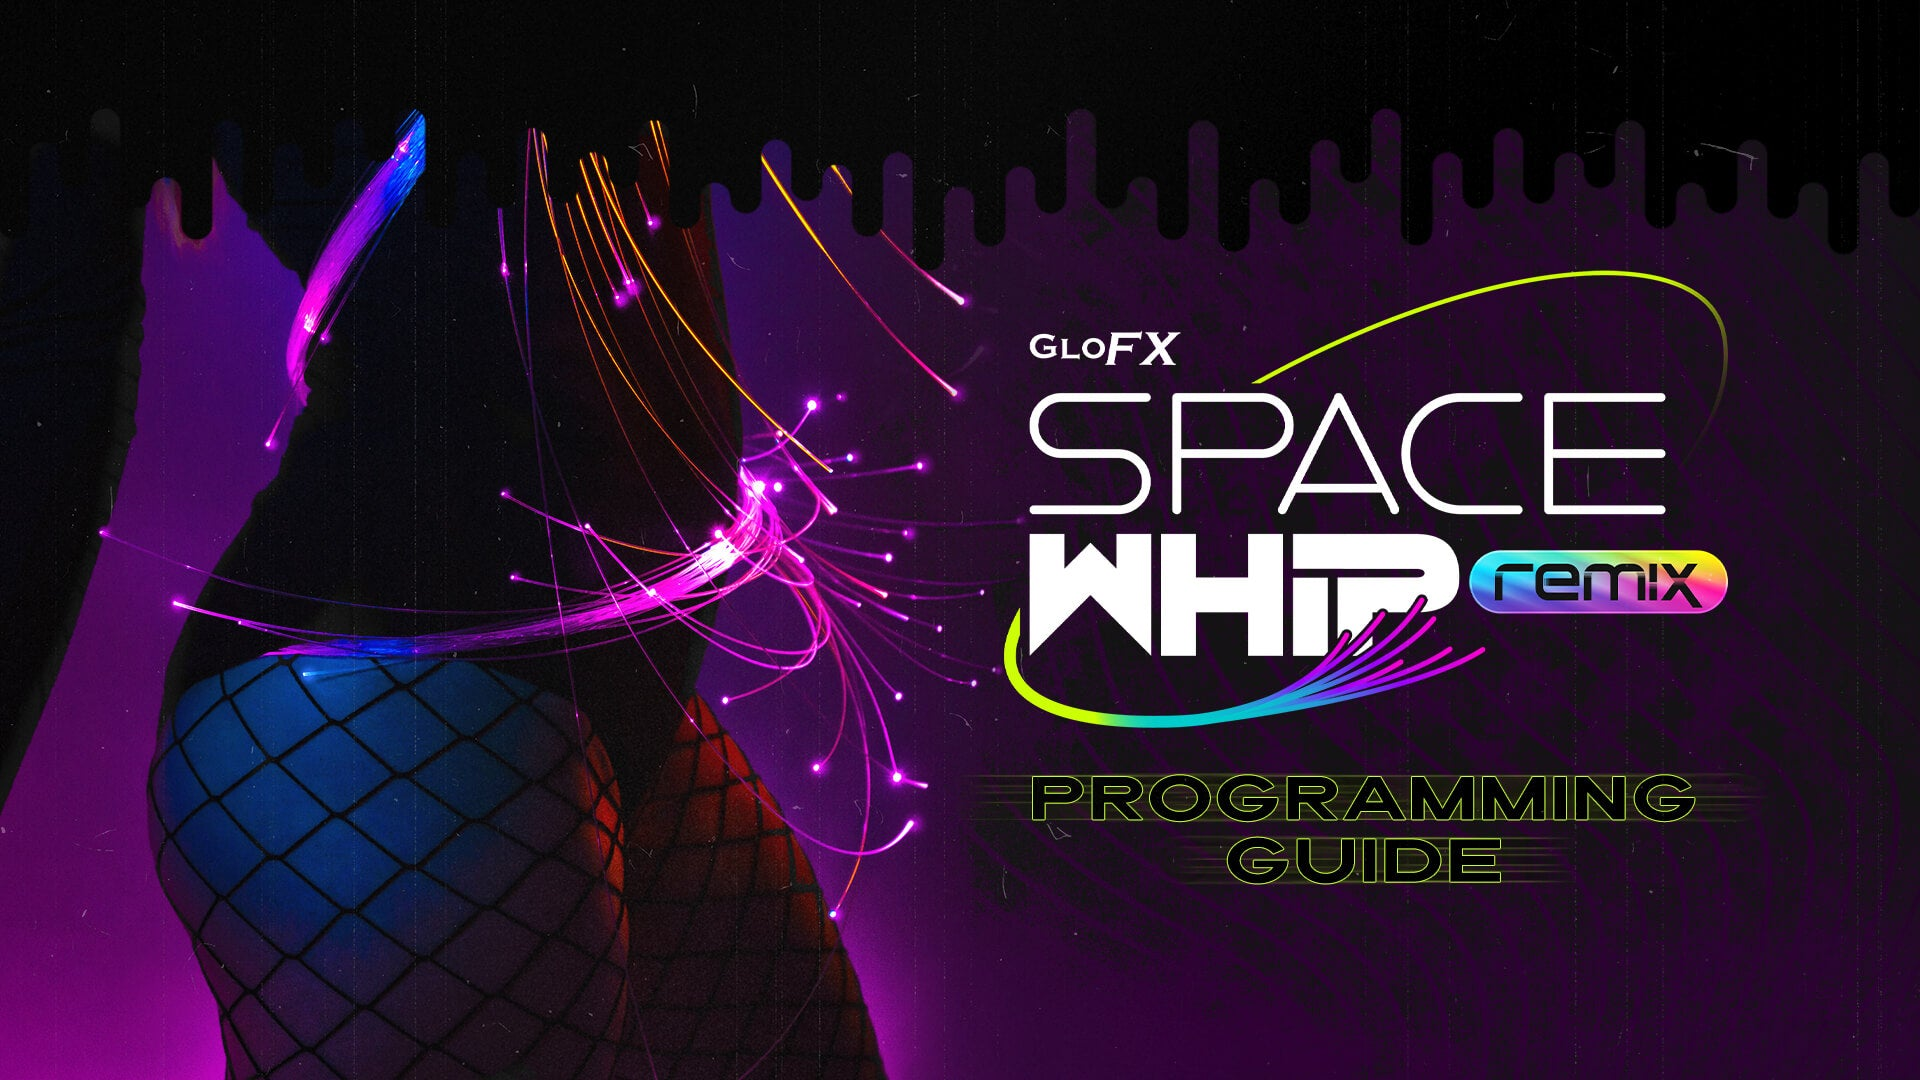 the spinsterz space whip remix programmable guide